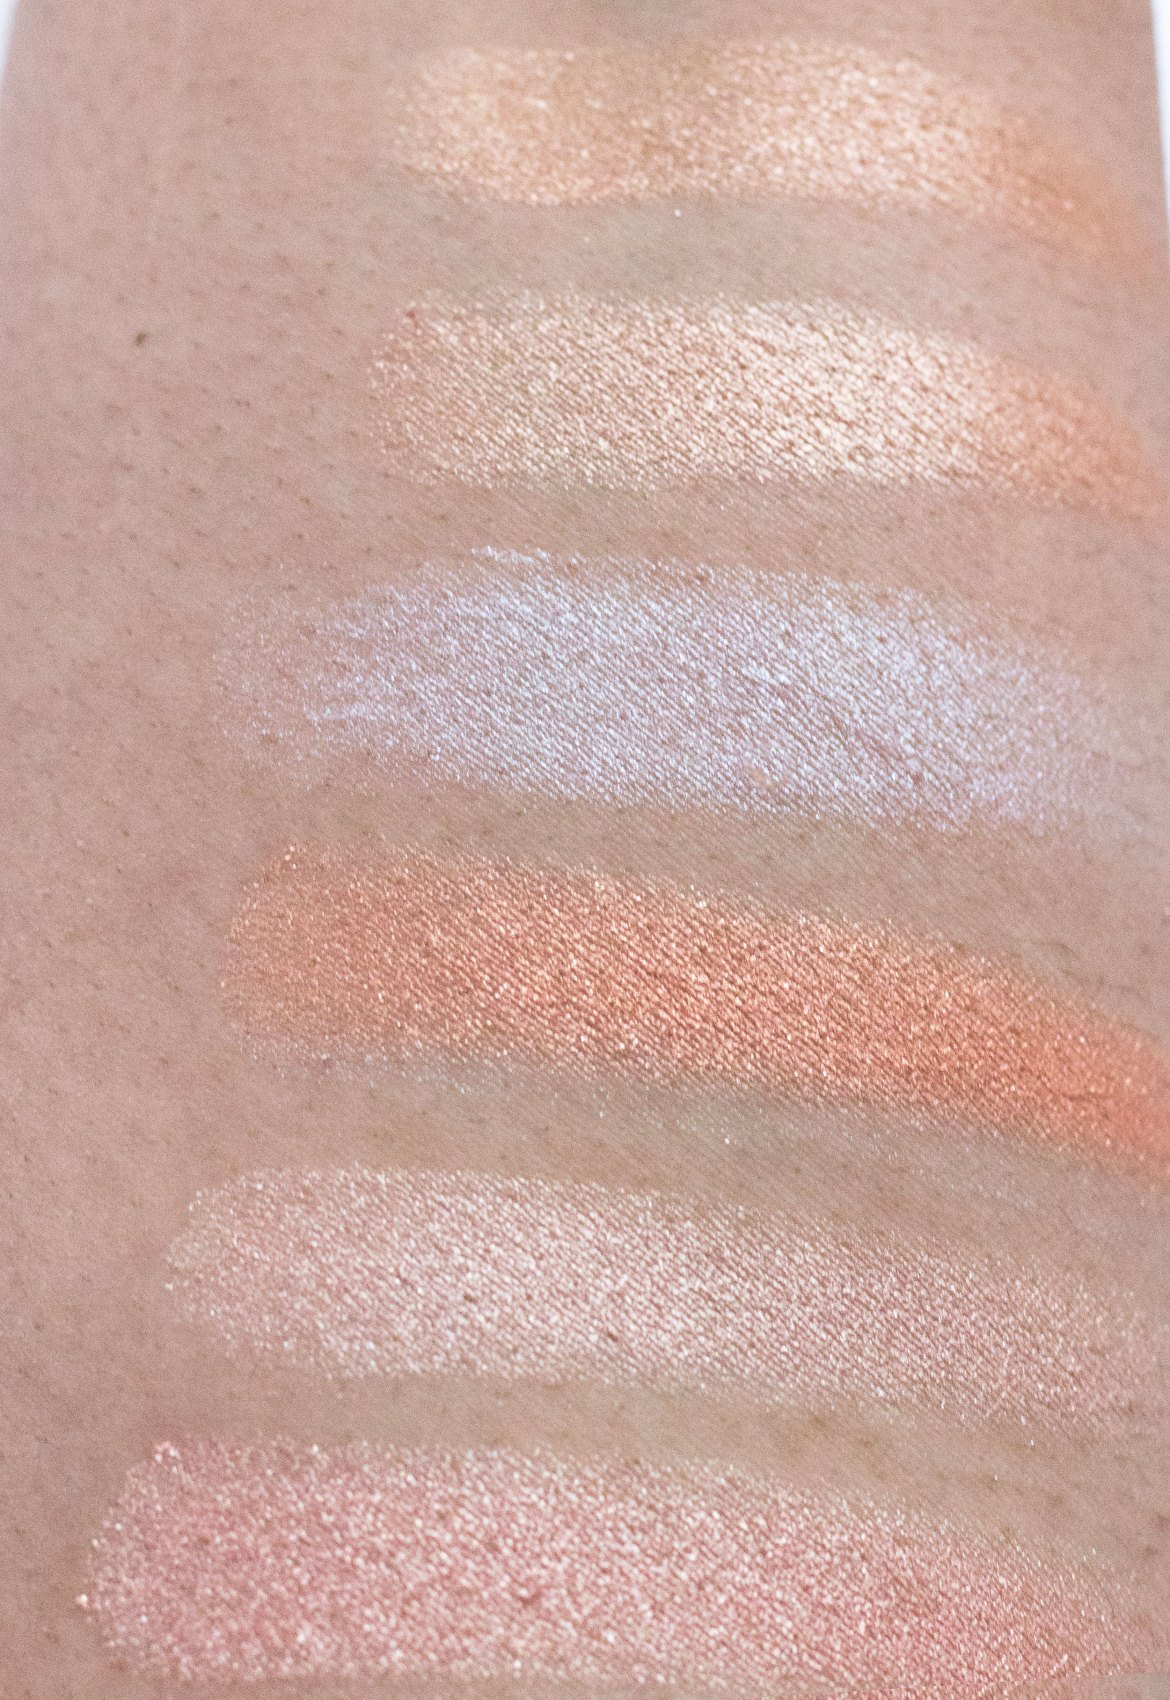 ABH Nicole Guerriero Glow Kit swatches top to bottom: 143, Glo Getter, Forever Lit, Daydream, Forever Young, Kitty Kat